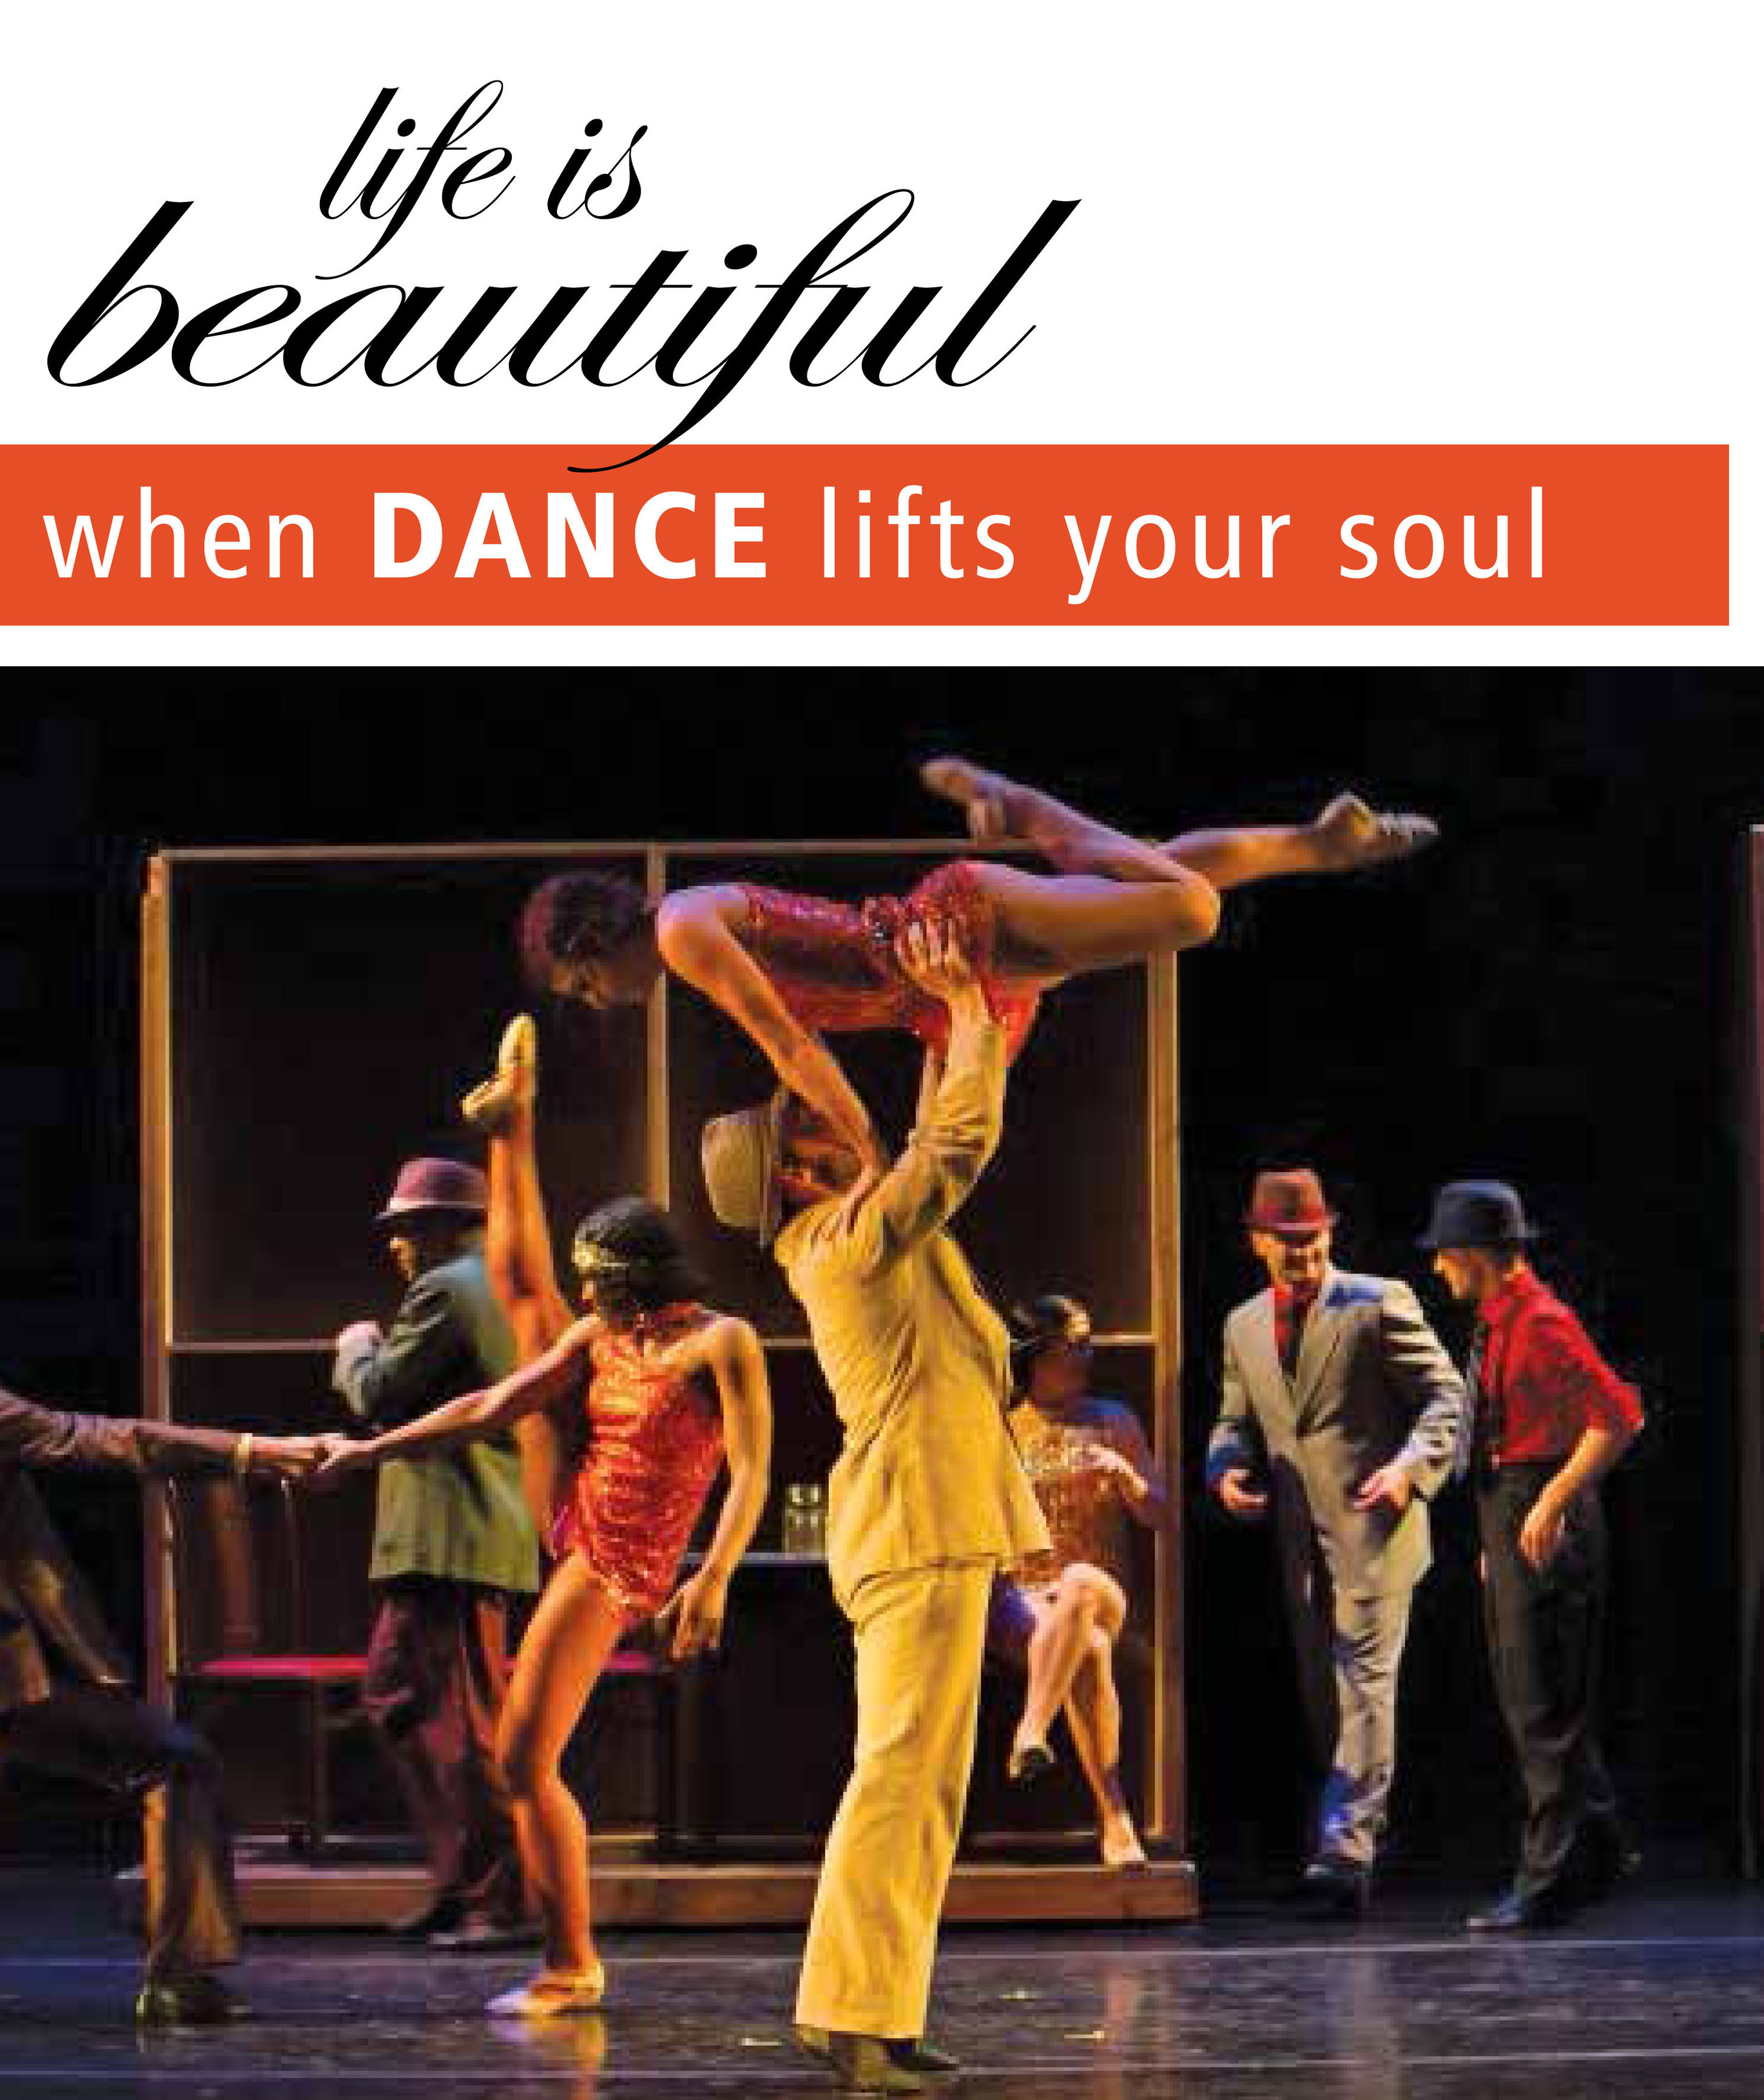 Life is Beautiful When Dance Lifts Your Soul